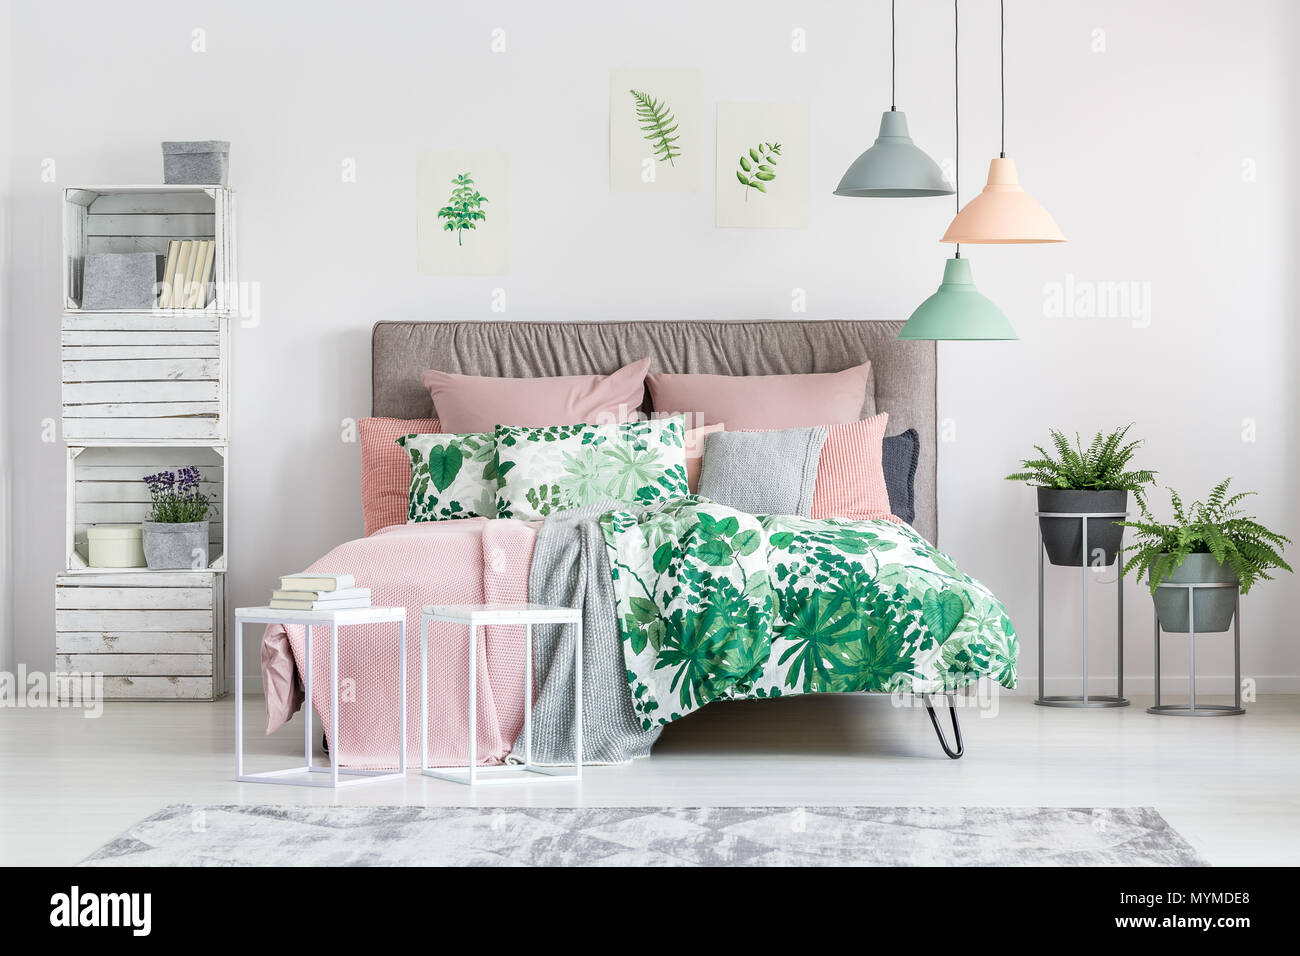 White pallet chest bookcase with books, flowers and boxes in stylish bedroom with potted plants - Stock Image